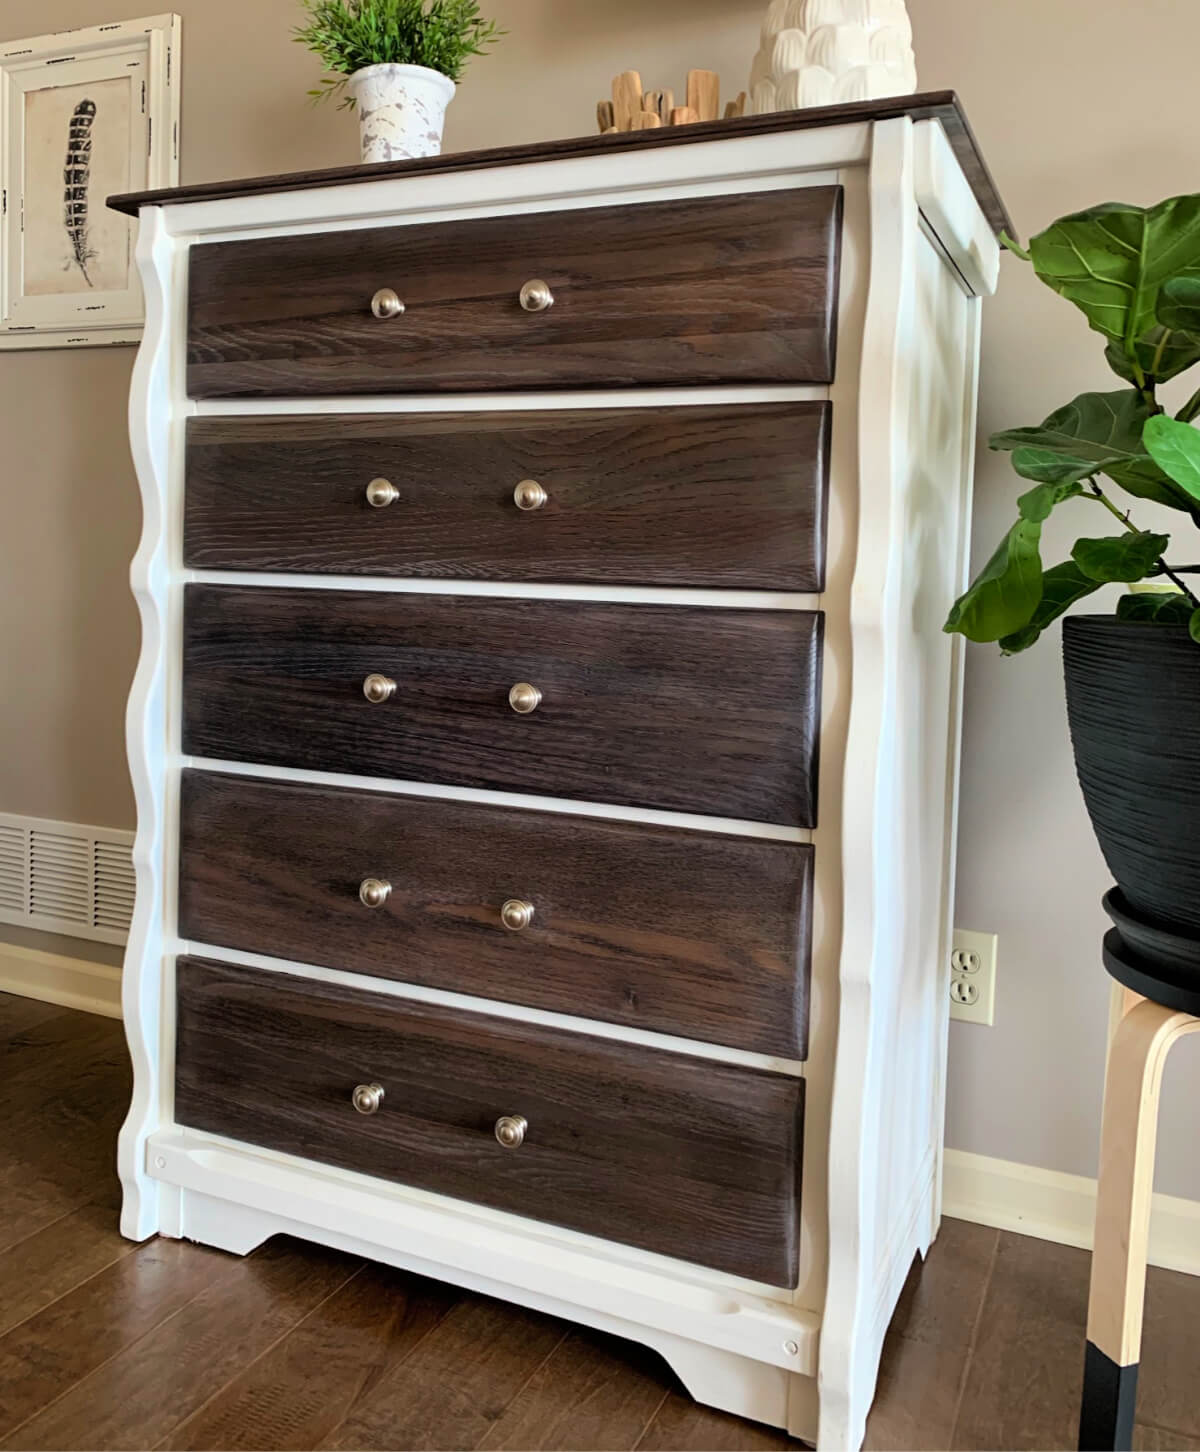 White dresser with gray stained top and drawers.